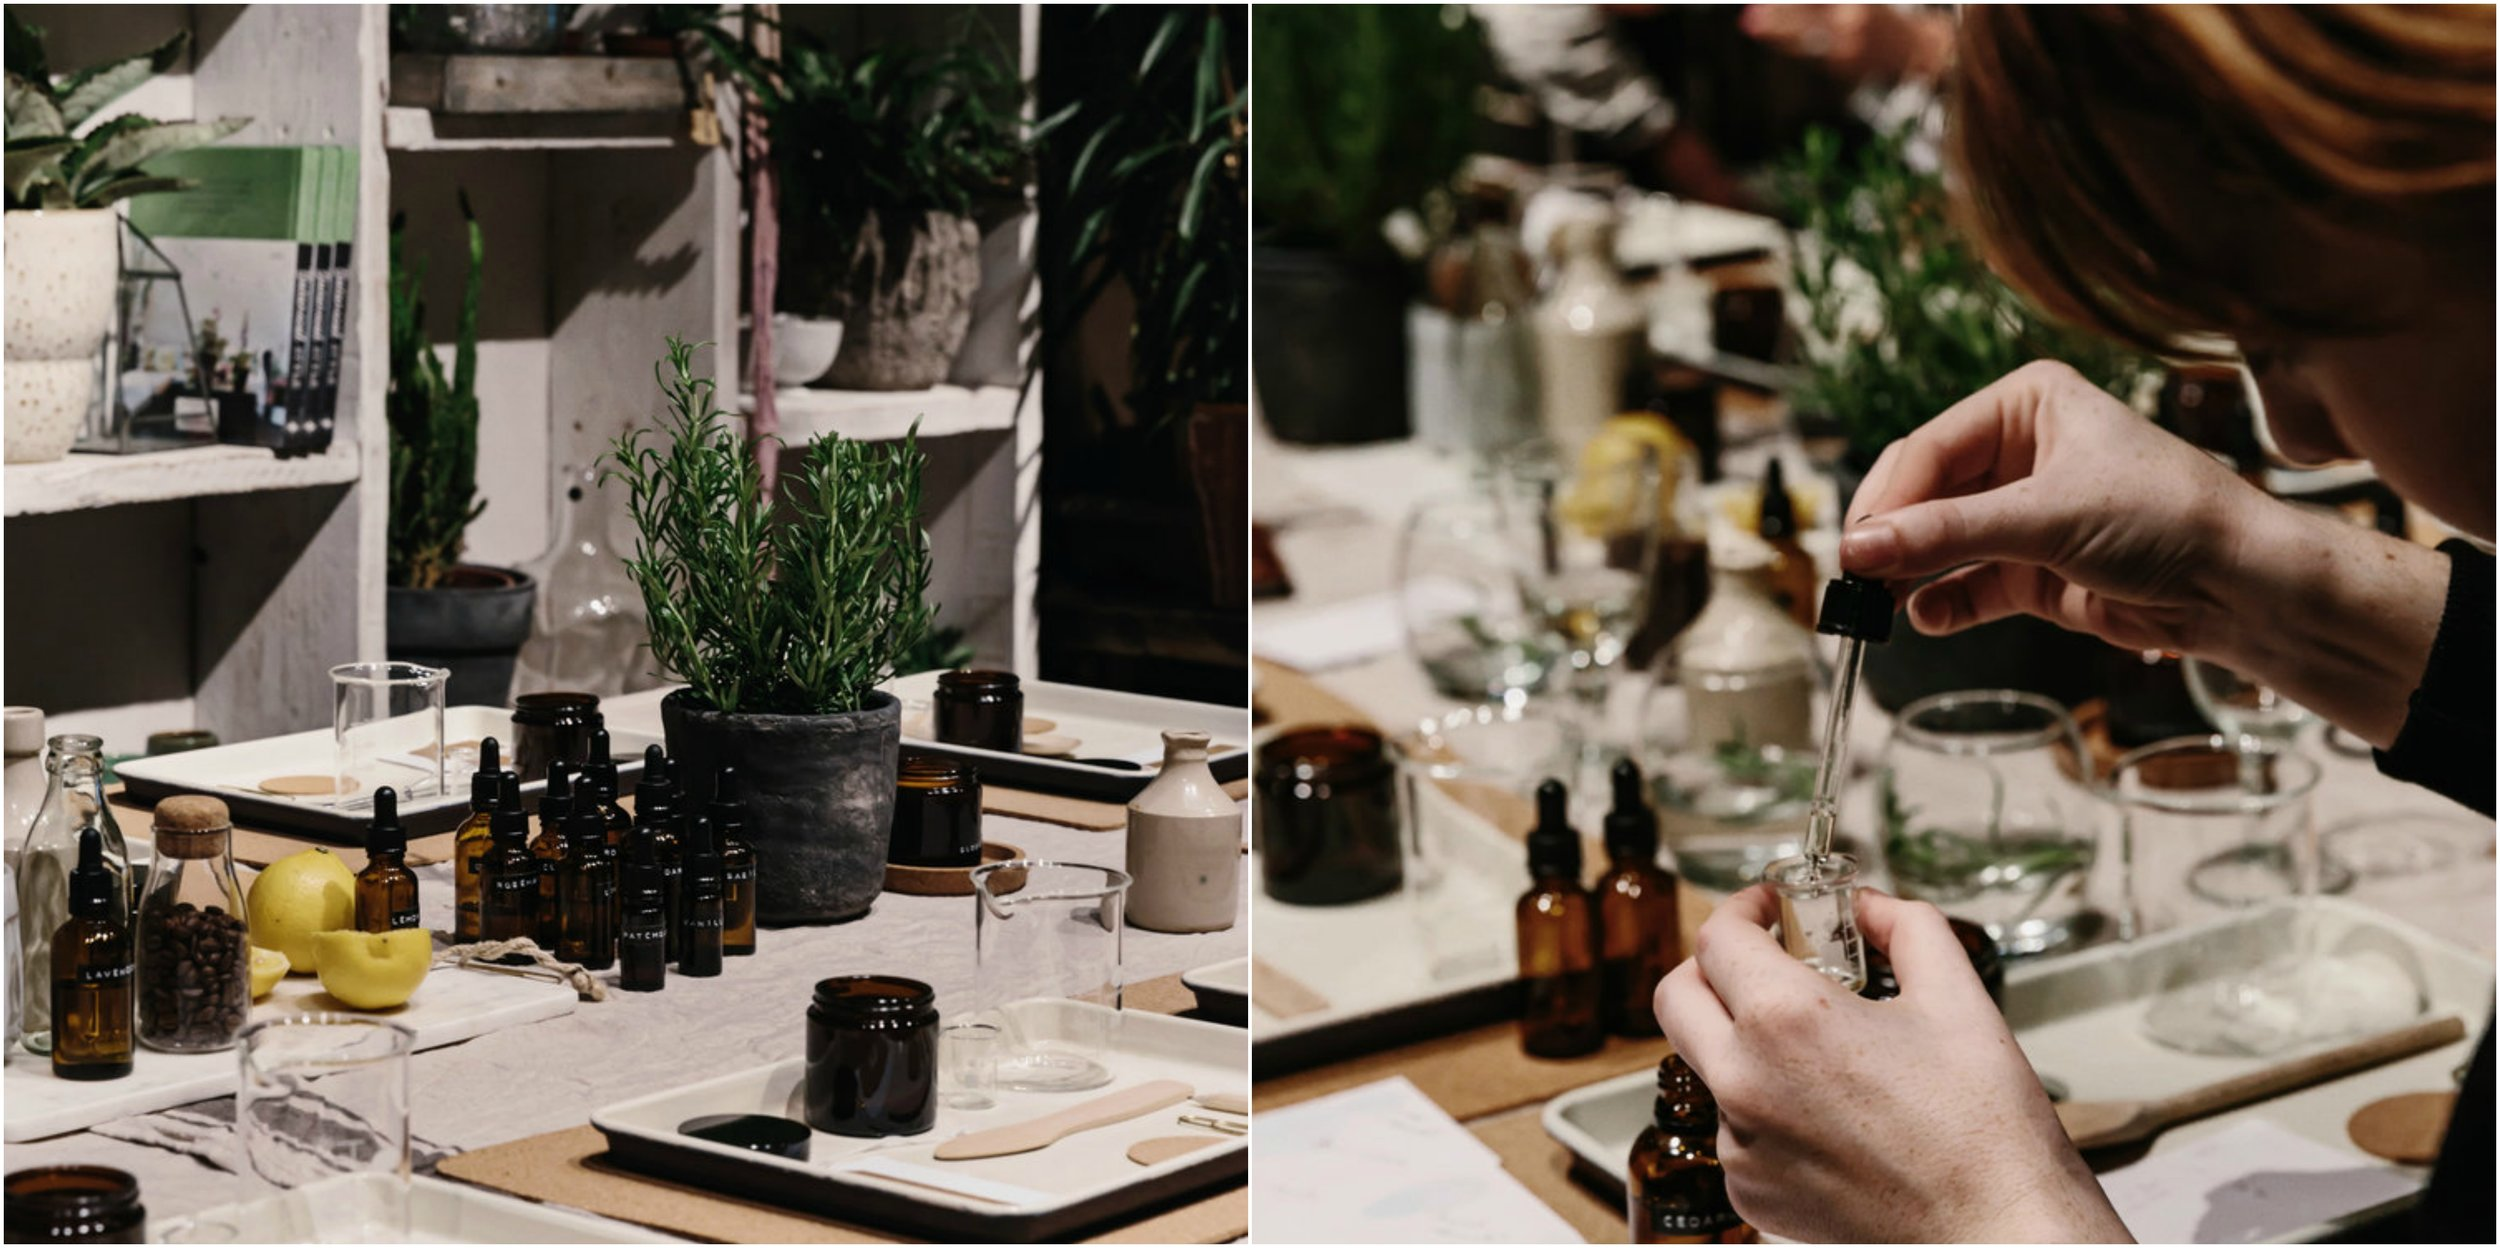 Candle making with Milkwood Candles | The best experiences you can buy your loved ones this Christmas | Eco-friendly living by The Foraged Life